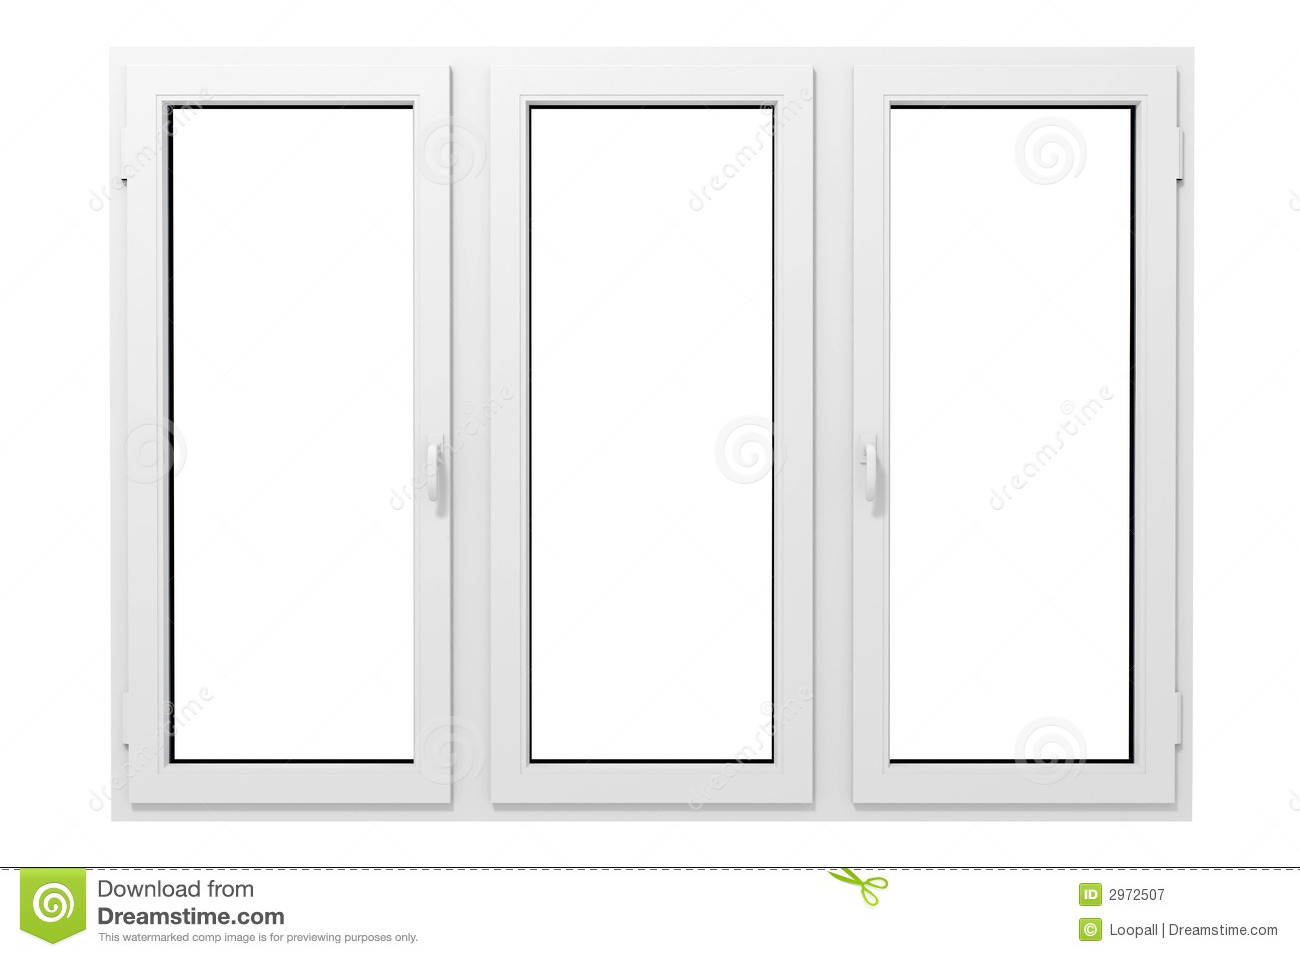 Plastic window royalty free stock photography image 2972507 for Window plastic